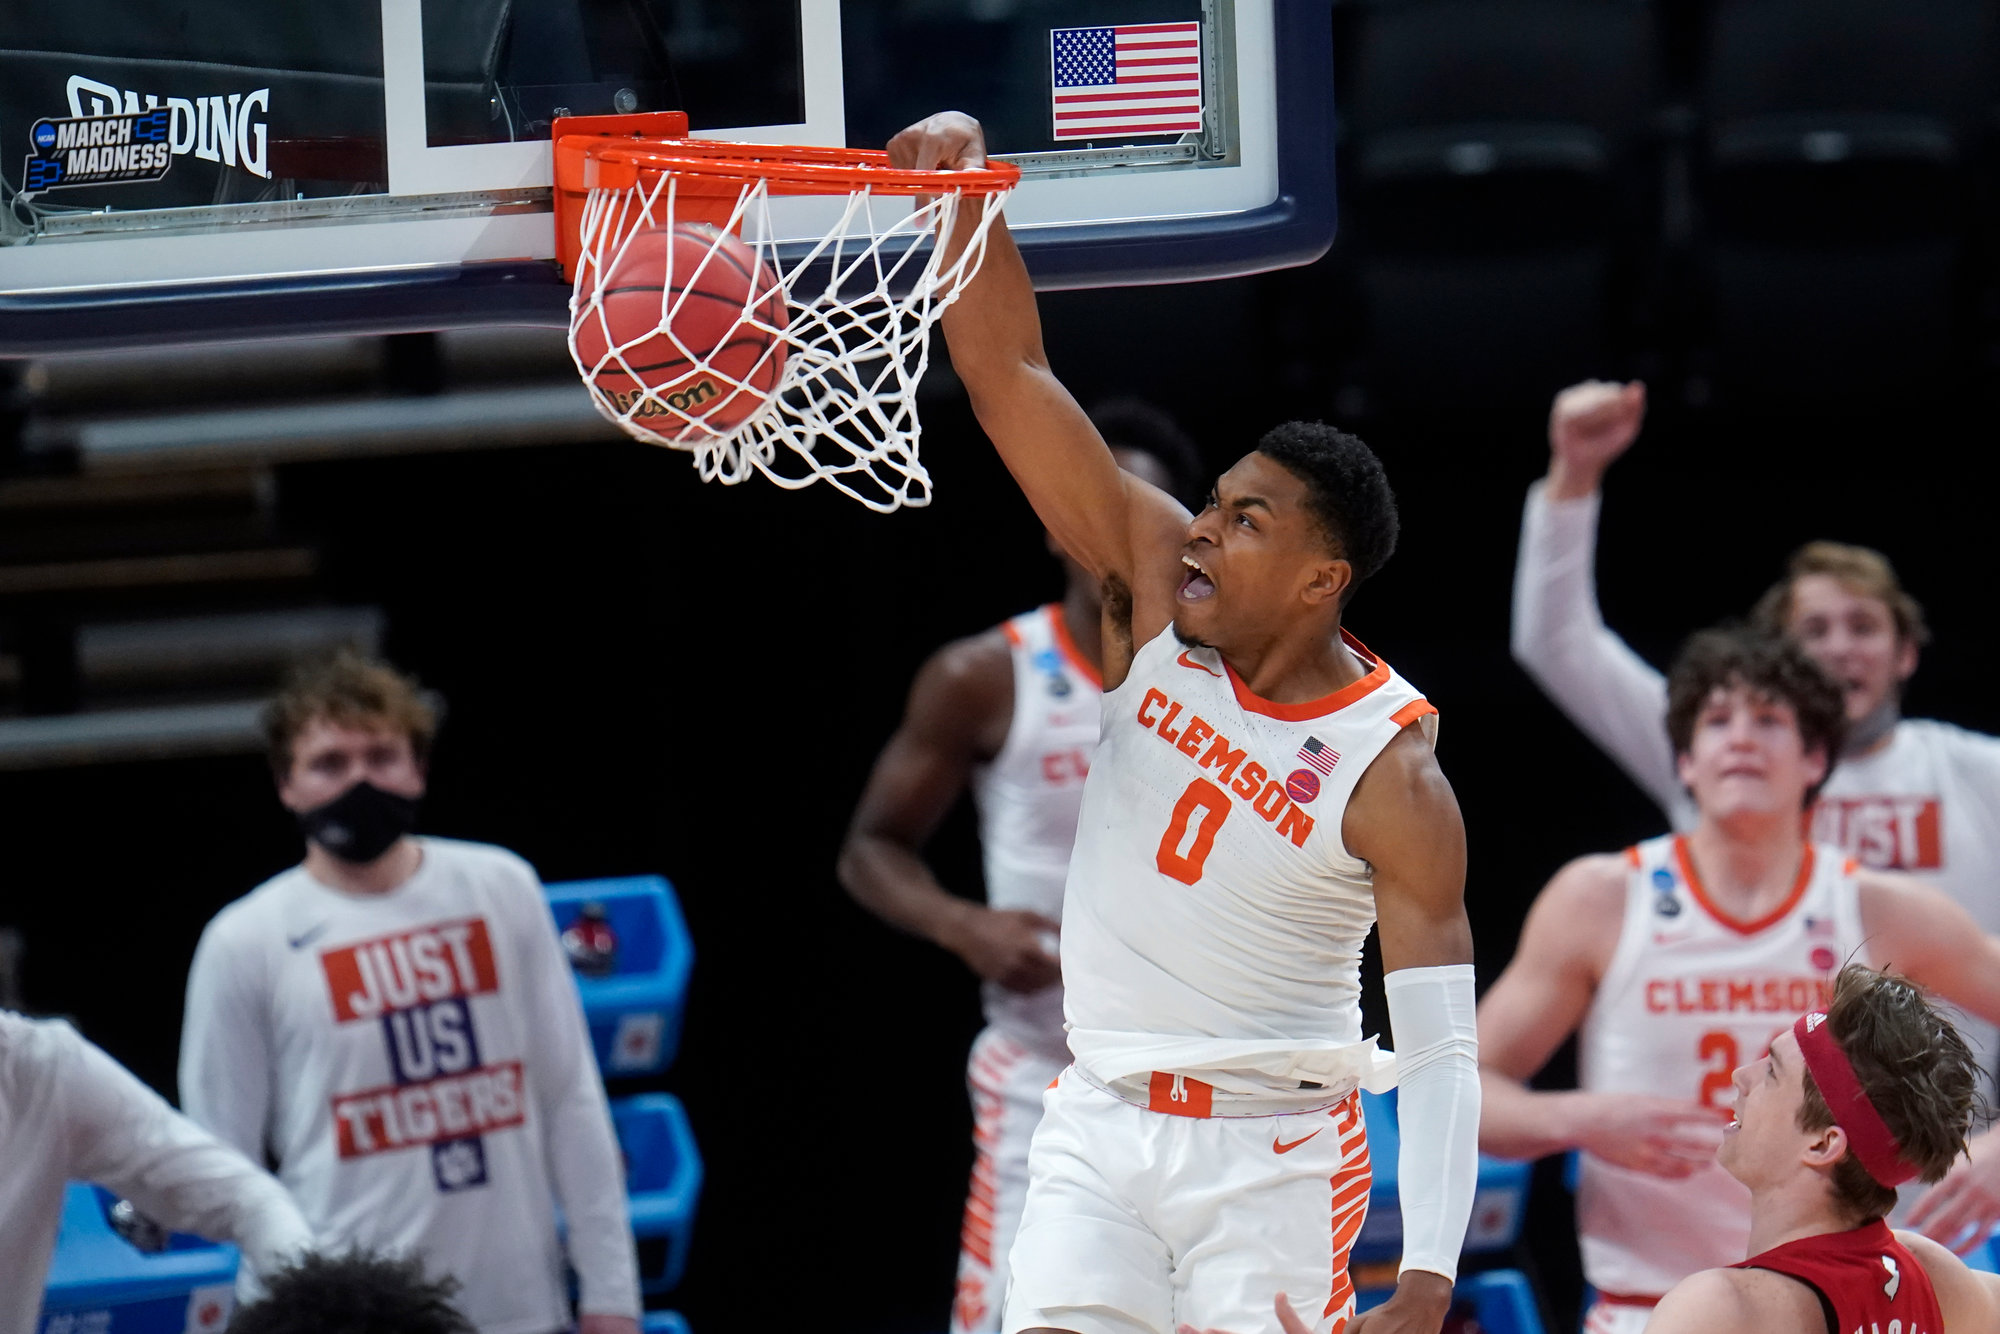 Clemson guard Clyde Trapp (0) dunks during the Tigers' 60-56 loss to Rutgers in the first round of the NCAA Tournament at Bankers Life Fieldhouse in Indianapolis on Friday.